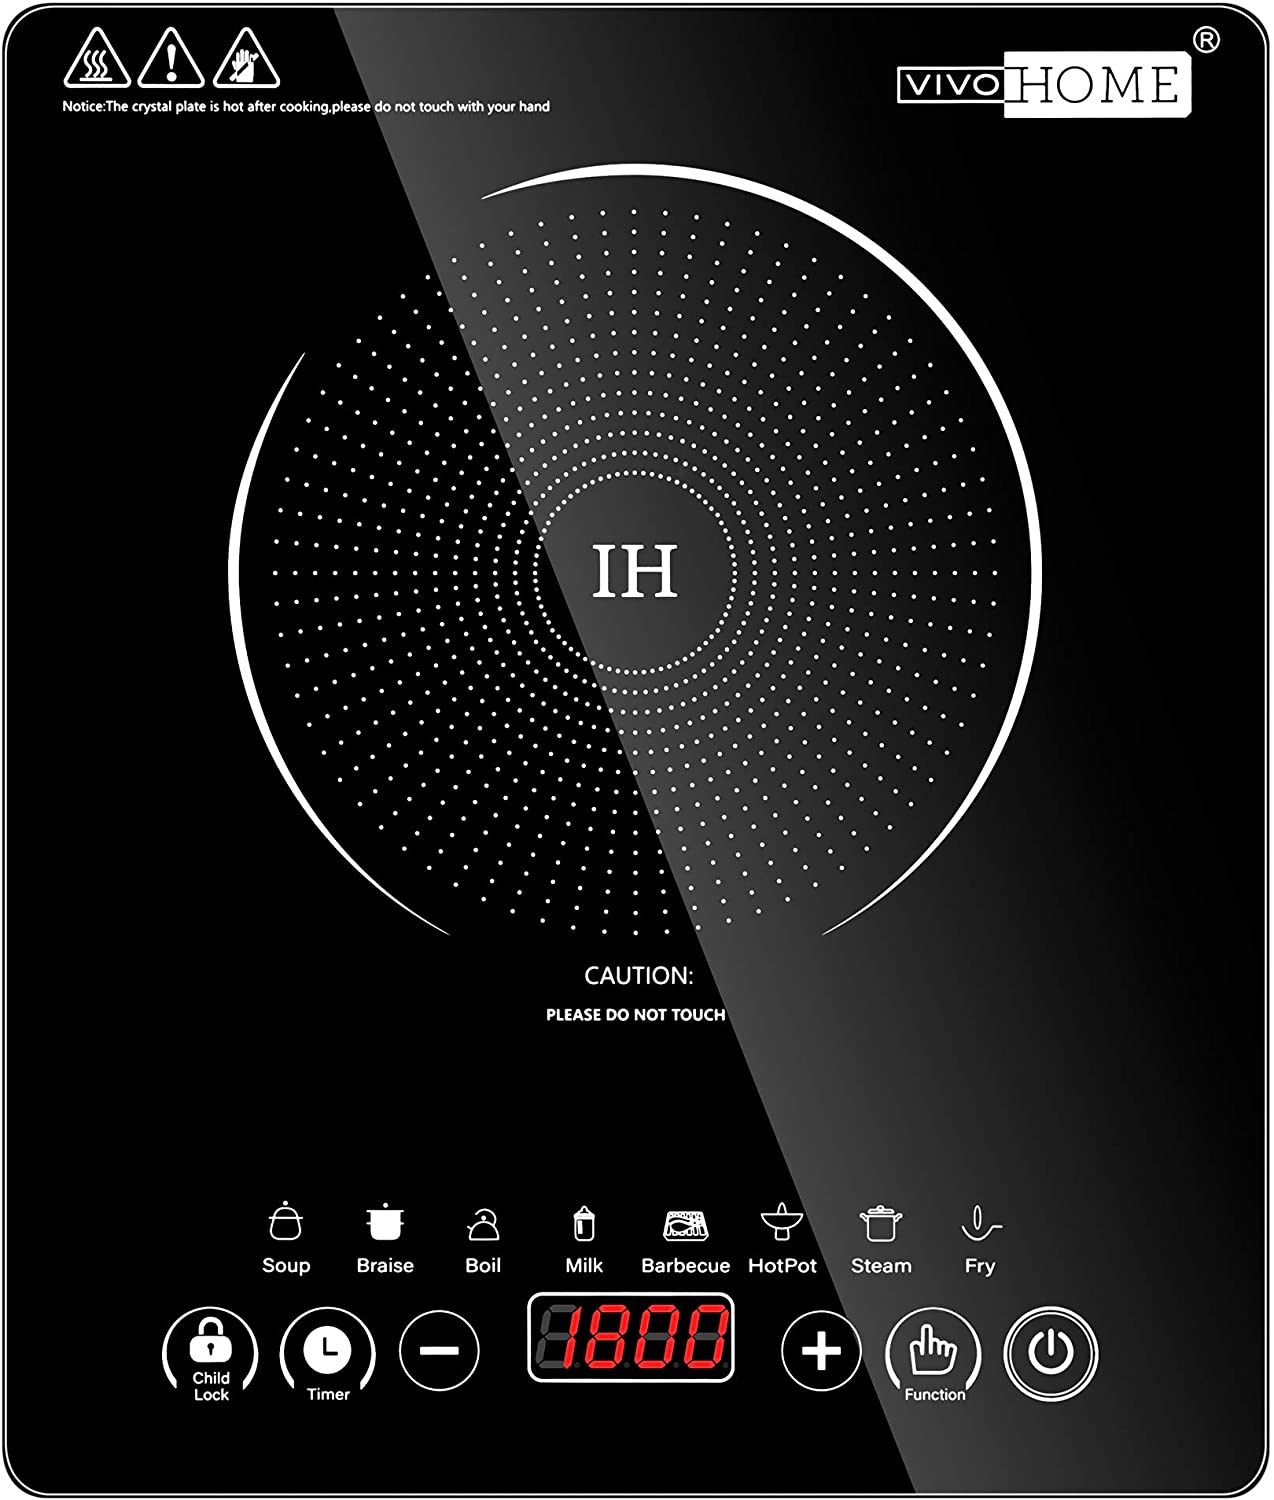 VIVOHOME 120V 1800W Electric Portable Induction Cooktop with 8 Preset Buttons, Sensor Touch Countertop Burner with 180-Min Countdown Timer and 0-24H Timing Start, 140 - 460℉ Temperature Adjustable